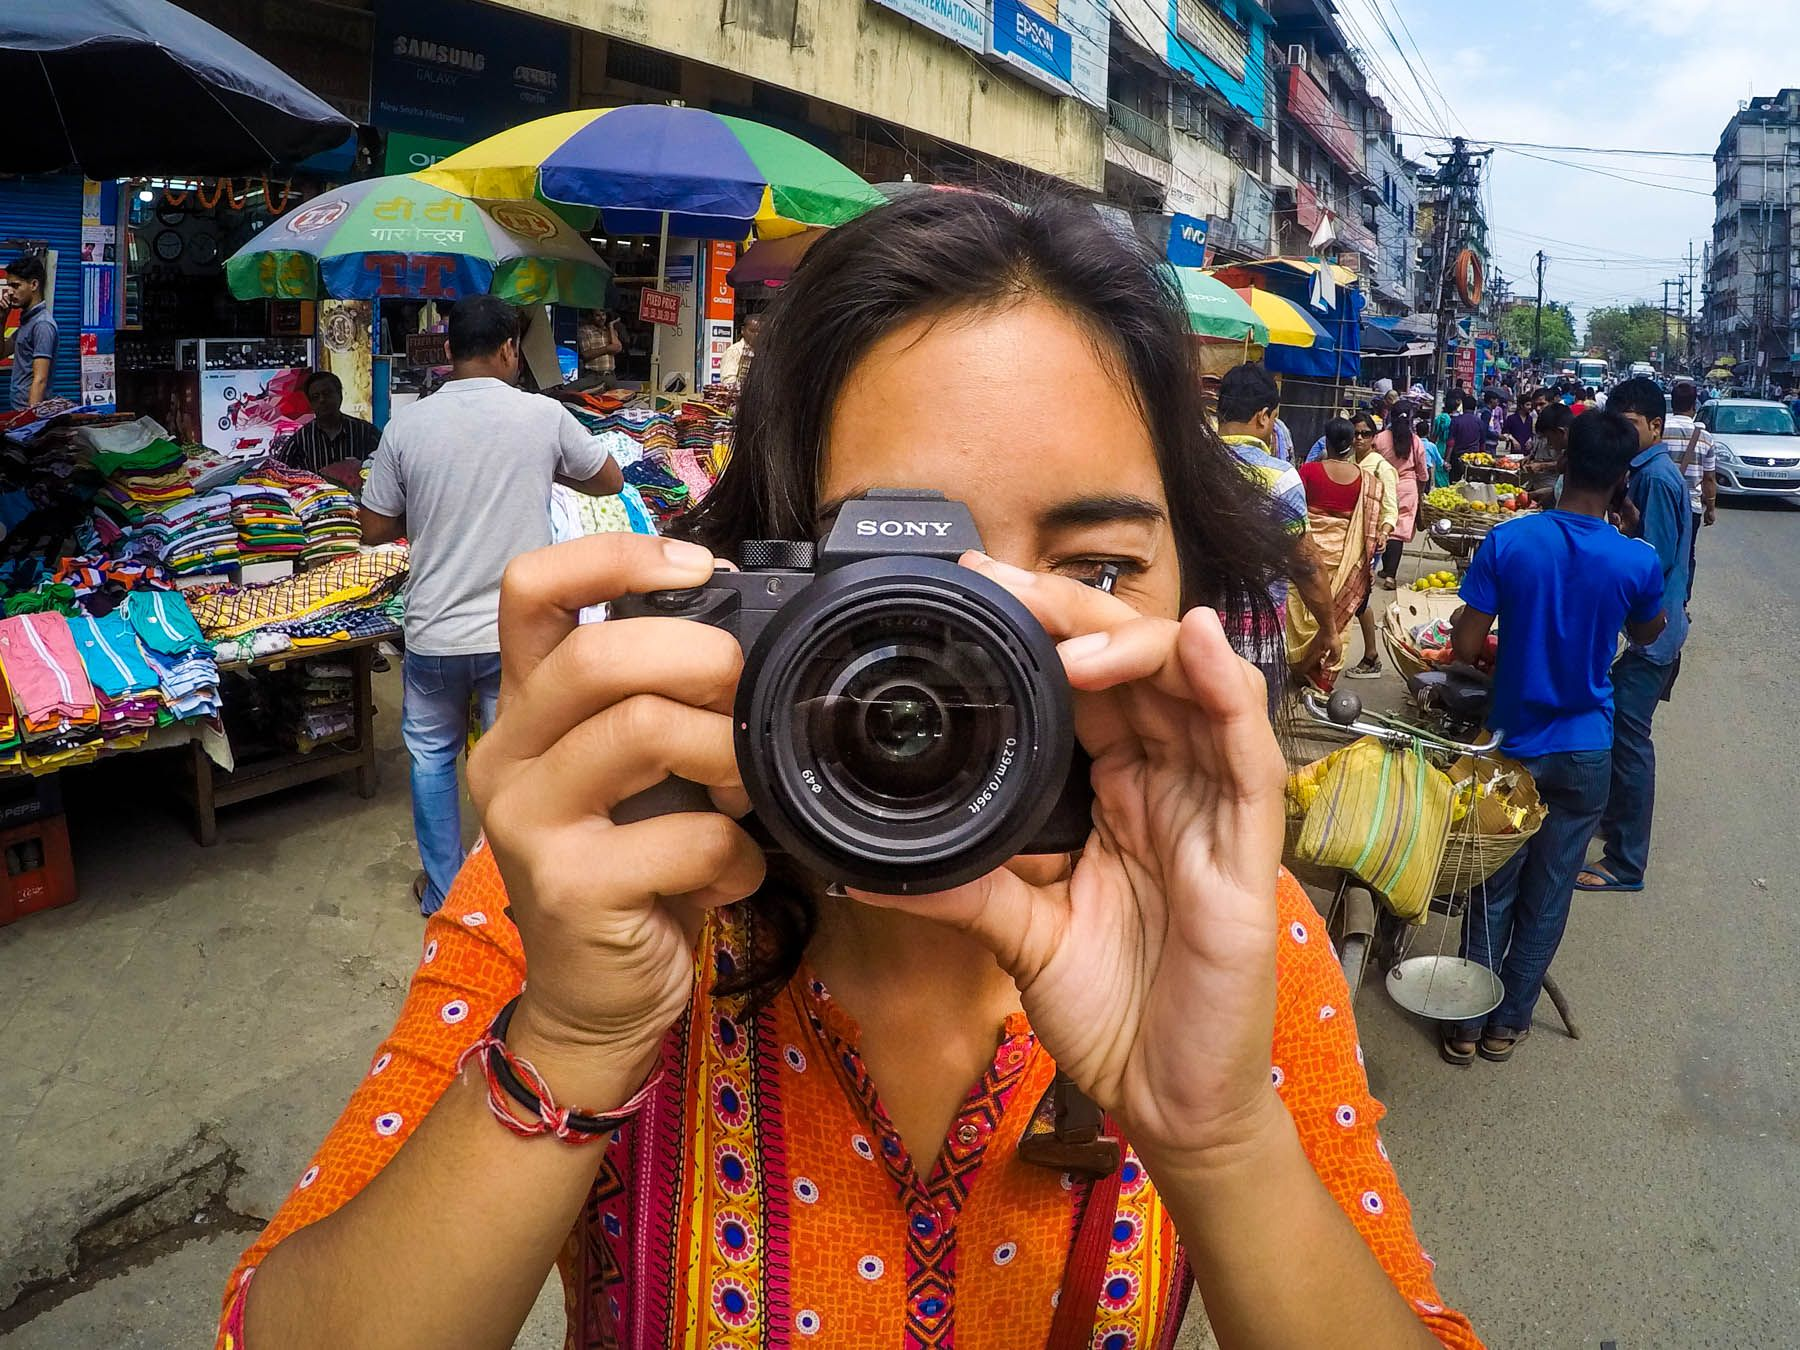 Everything you need to know about upgrading from a Nikon DSLR to a Sony a7RII mirrorless full frame camera the perfect camera for travel photographers